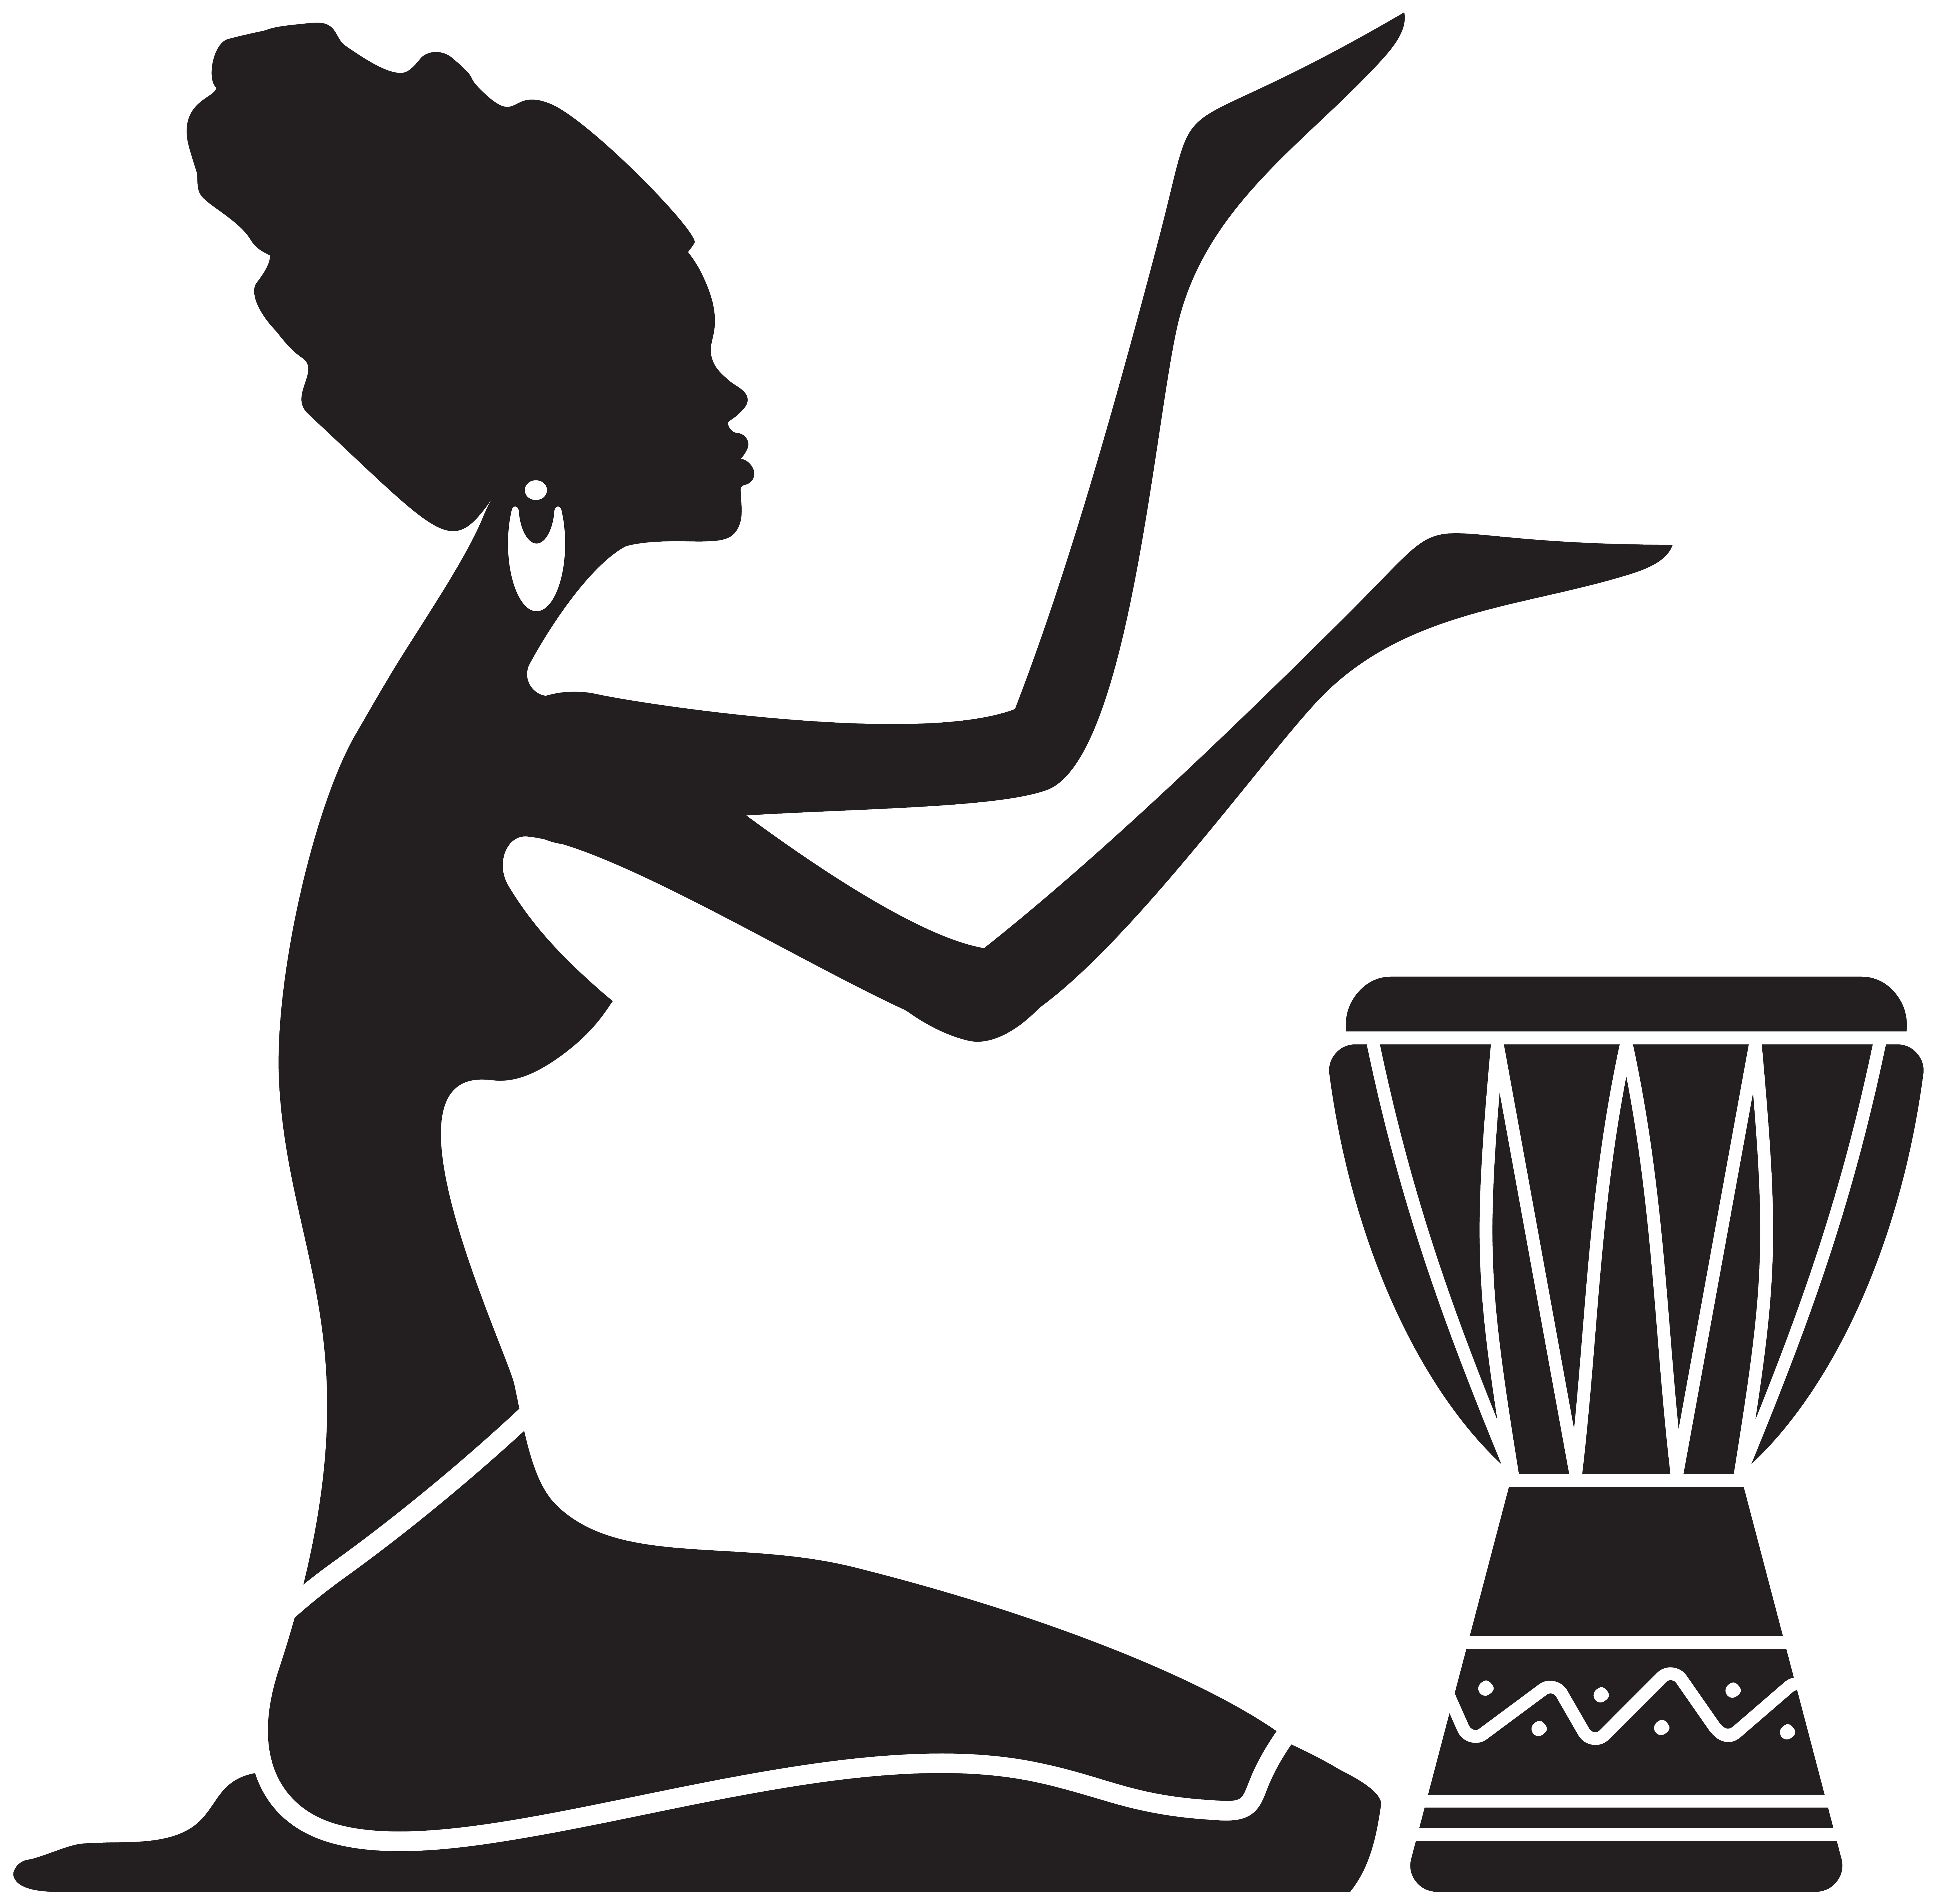 African Women Silhouette PNG Clip Art Image.